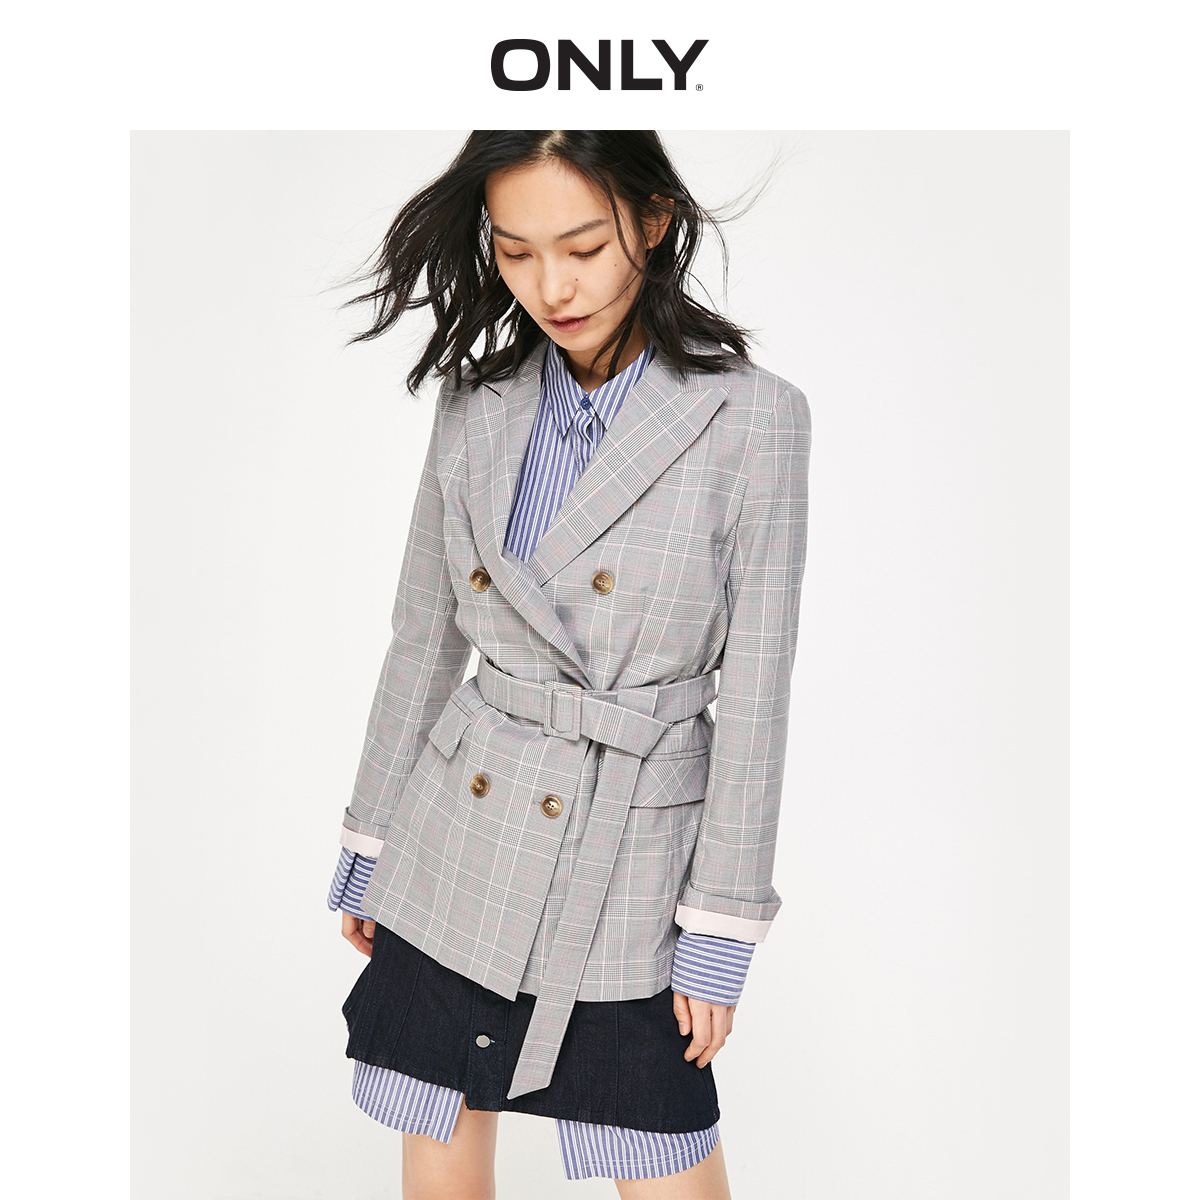 ONLY 2019 Spring Summer New Women's Vintage Leisure Checked Blazer |119108531